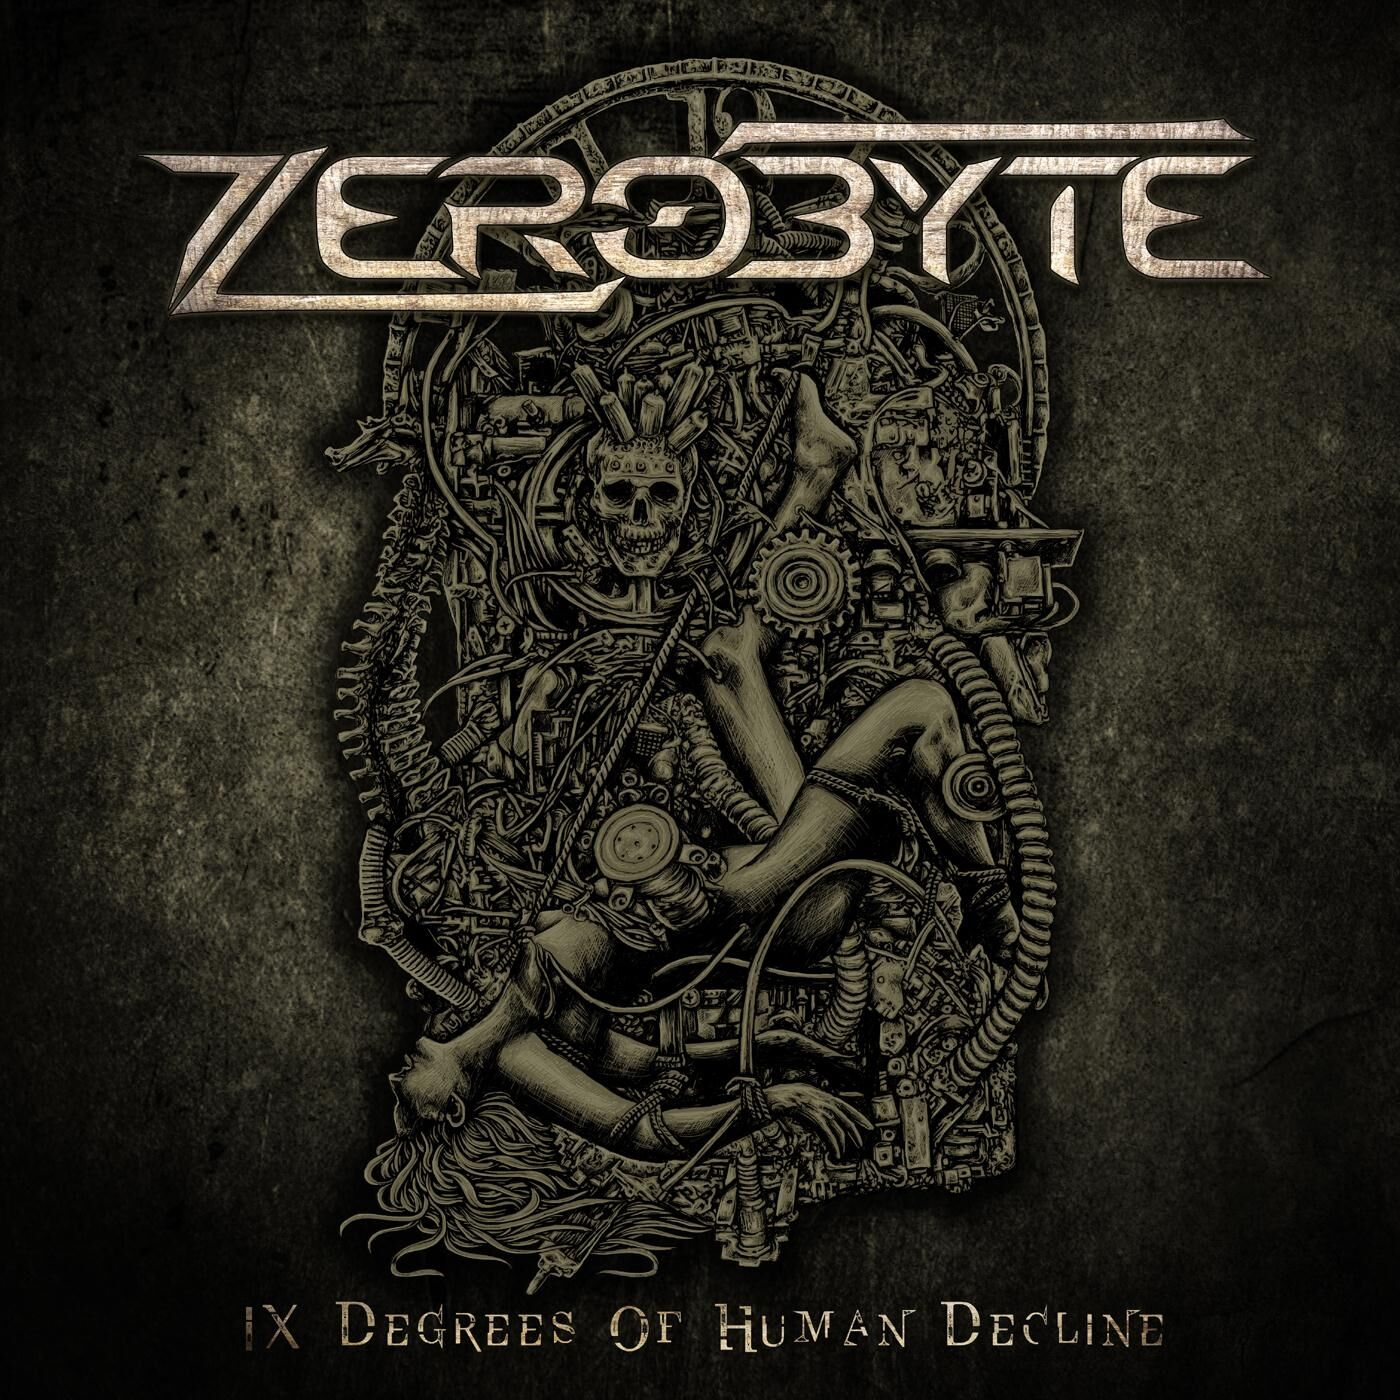 Zerobyte - IX Degrees of Human Decline (2016)